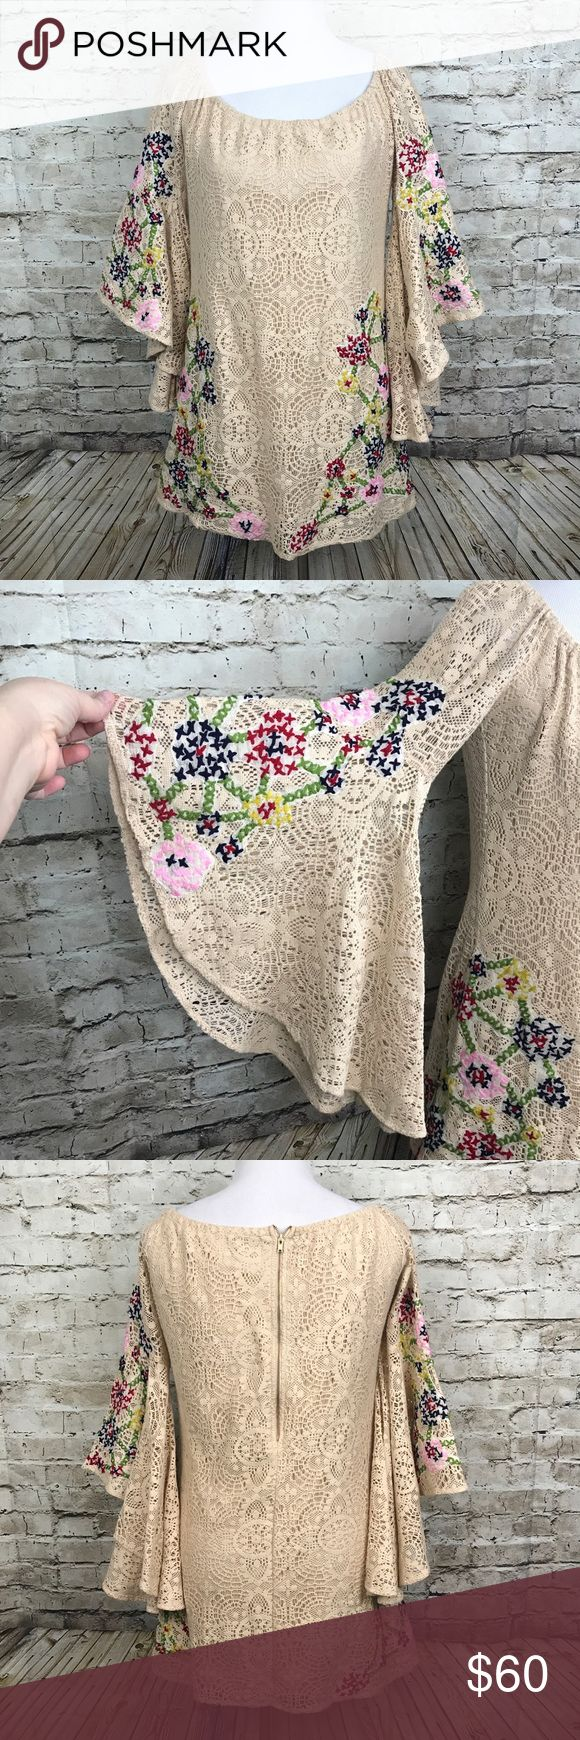 """JUDITH MARCH Small Lace Dress Bell Sleeves JUDITH MARCH Small Lace Dress Bell Sleeves Floral Crochet Boho Tunic Raglan  30"""" shoulder to hem and 20"""" armpit to armpit but will stretch more Judith March Dresses"""